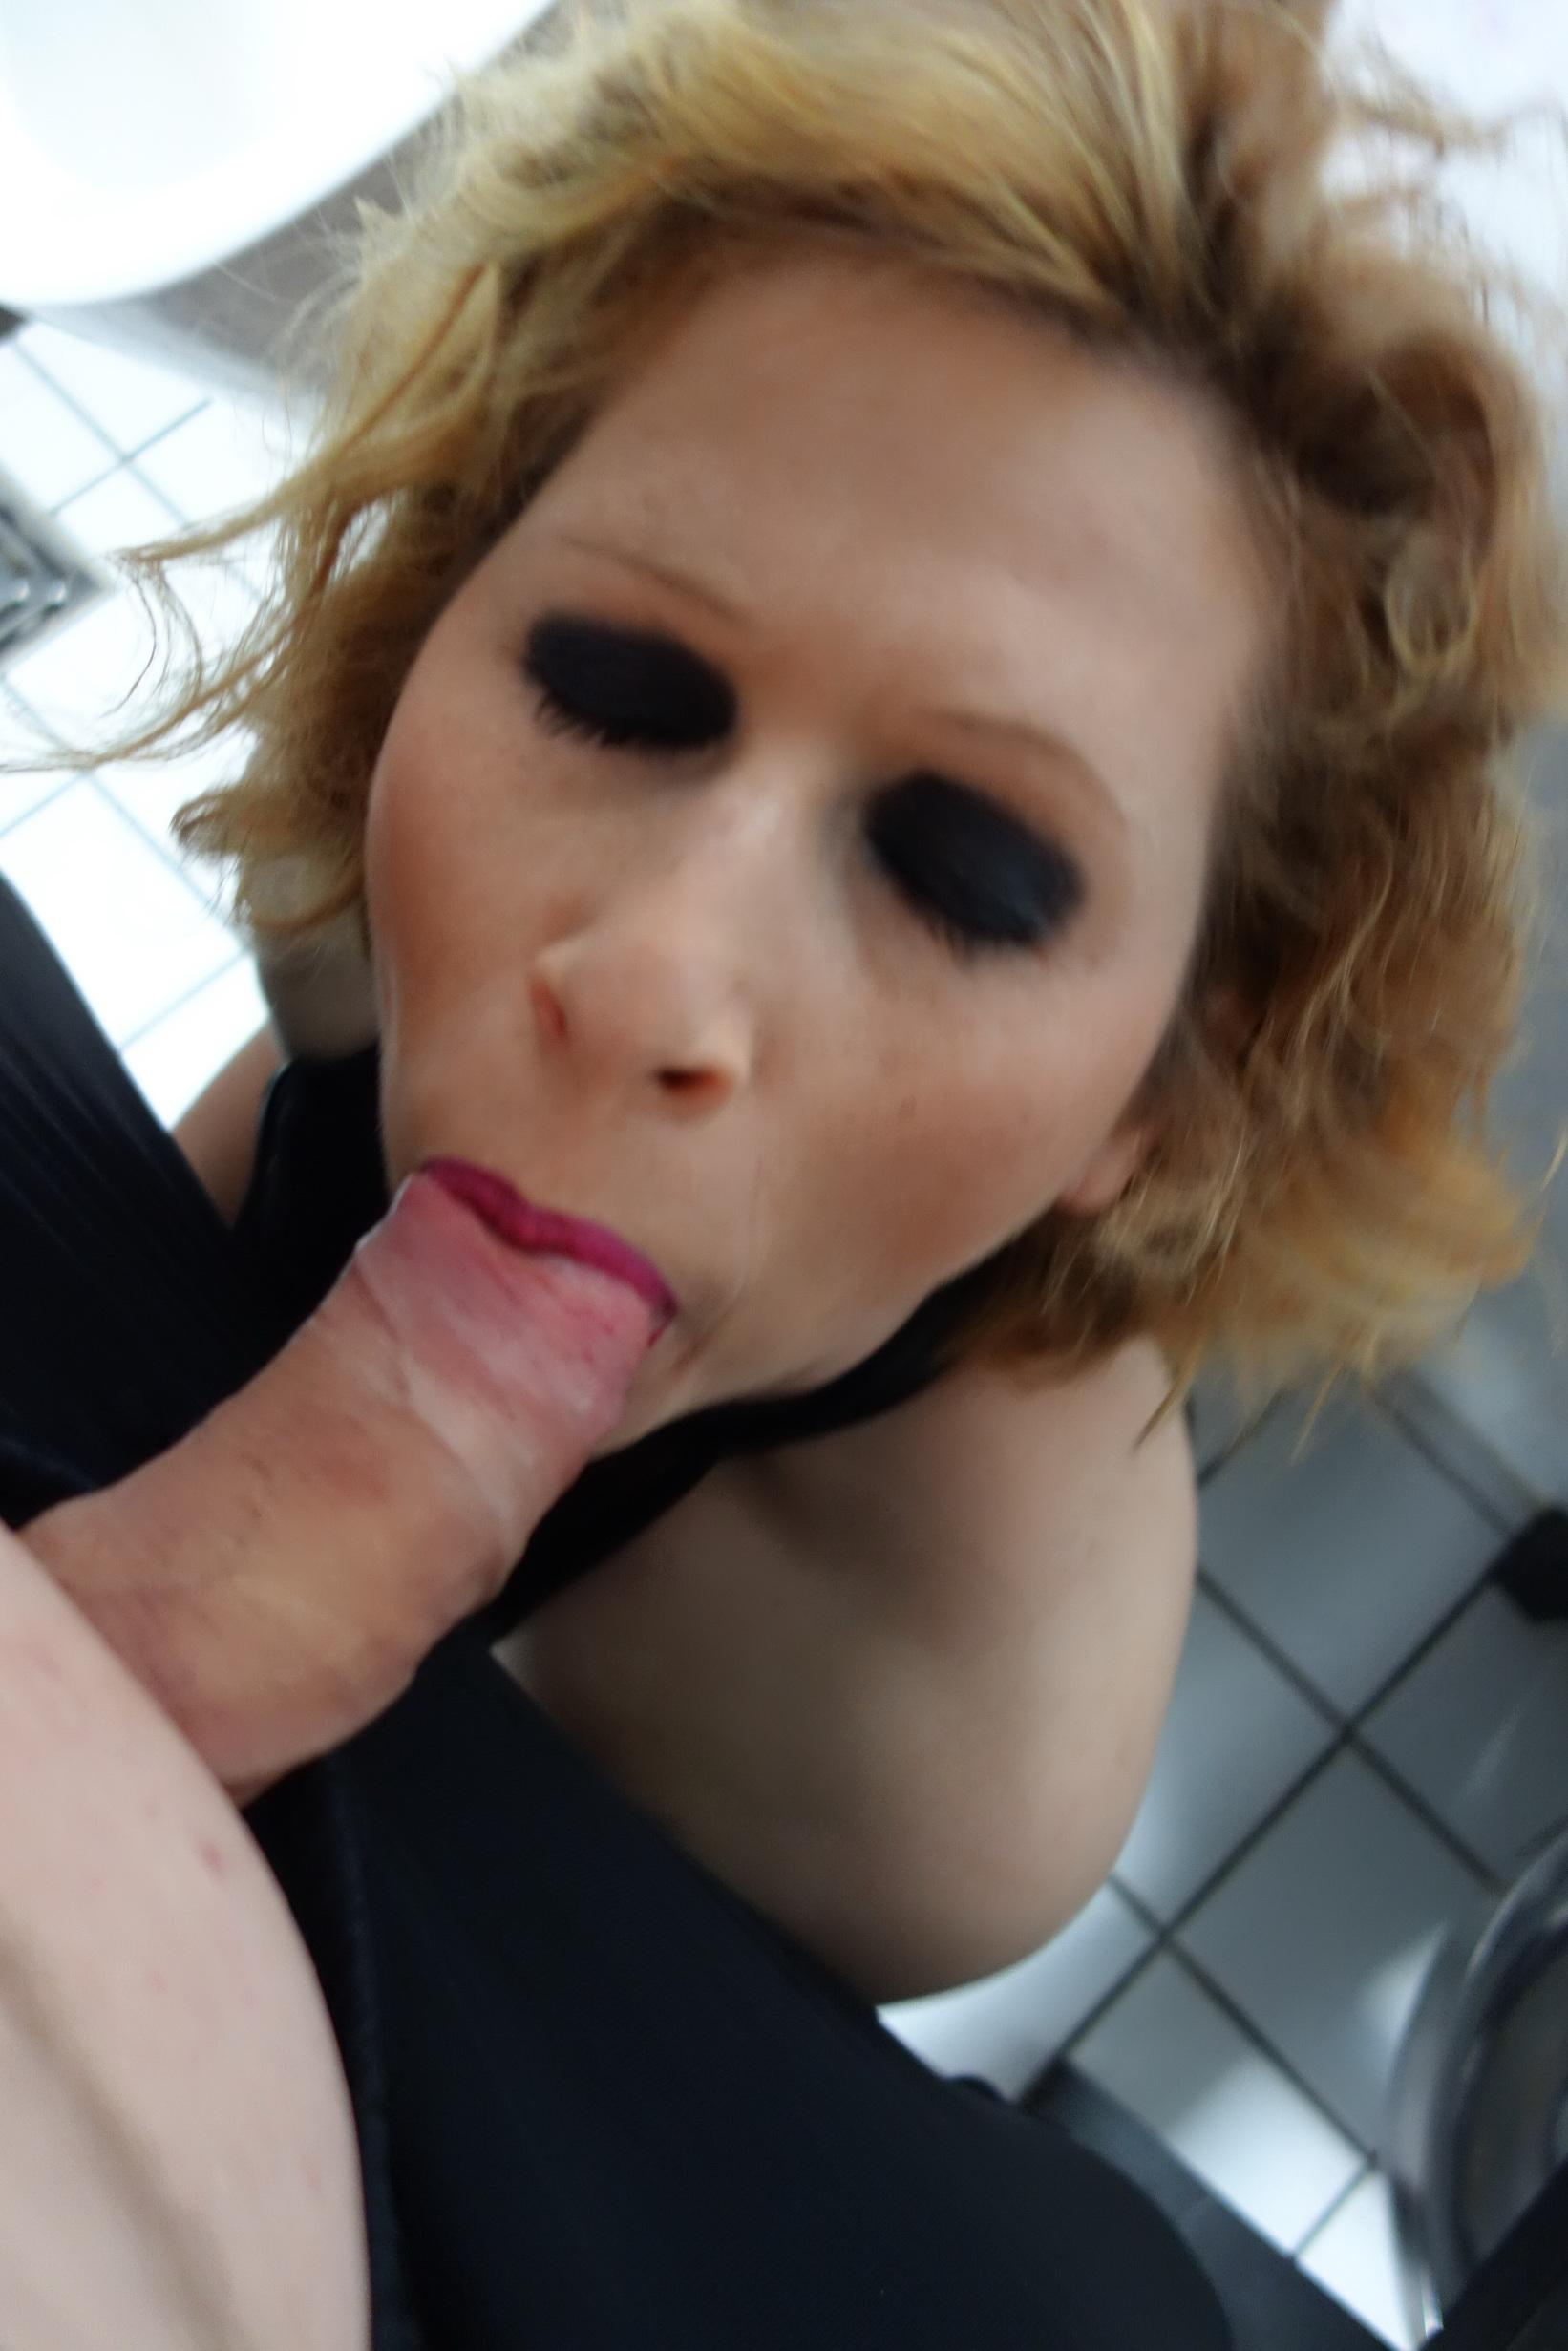 Horny mom enjoys the taste of a huge cock on sex pic. Sweet amateur MILF gives an amazing blowjob in the bathroom